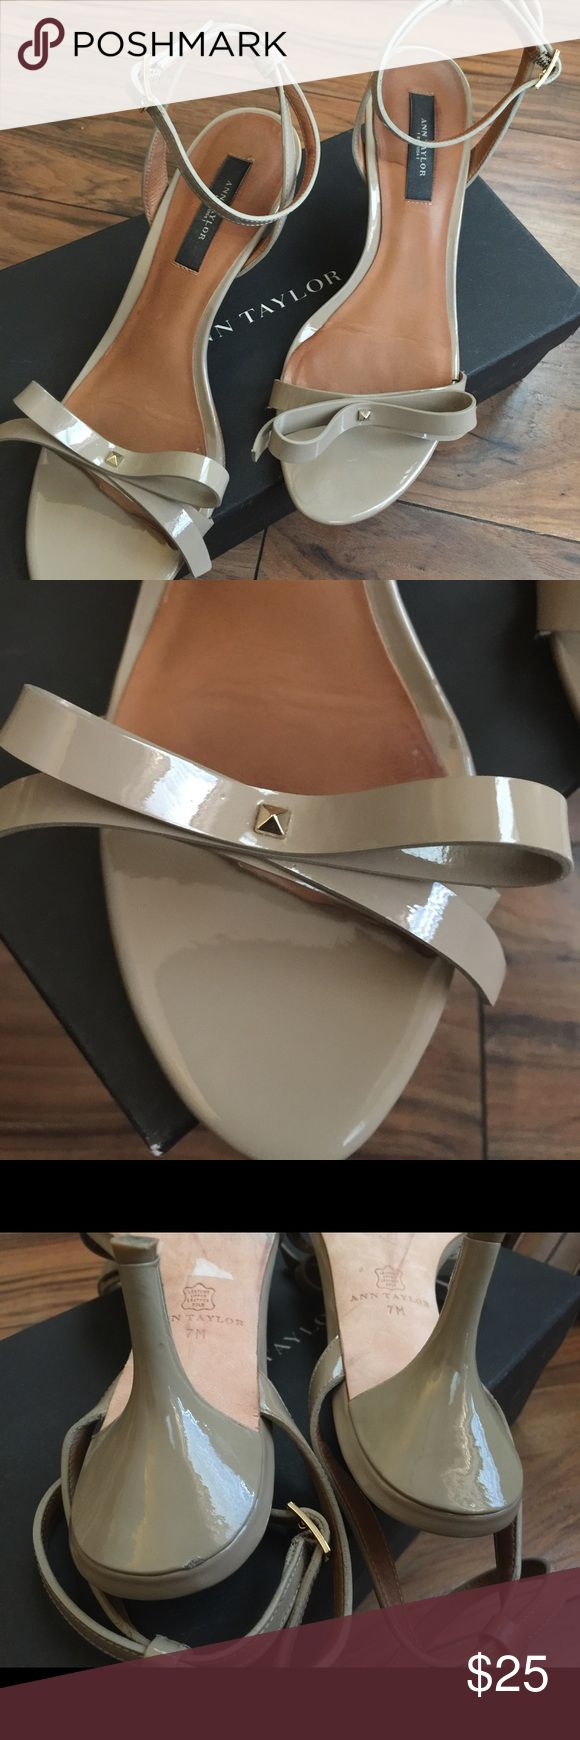 Ann Taylor Iris Bow Kitten Sandals These Ann Taylor Iris Bow Kitten Sandals are so classic and classy!  Cool khaki  color.  Ankle strap.   Comes with box Ann Taylor Shoes